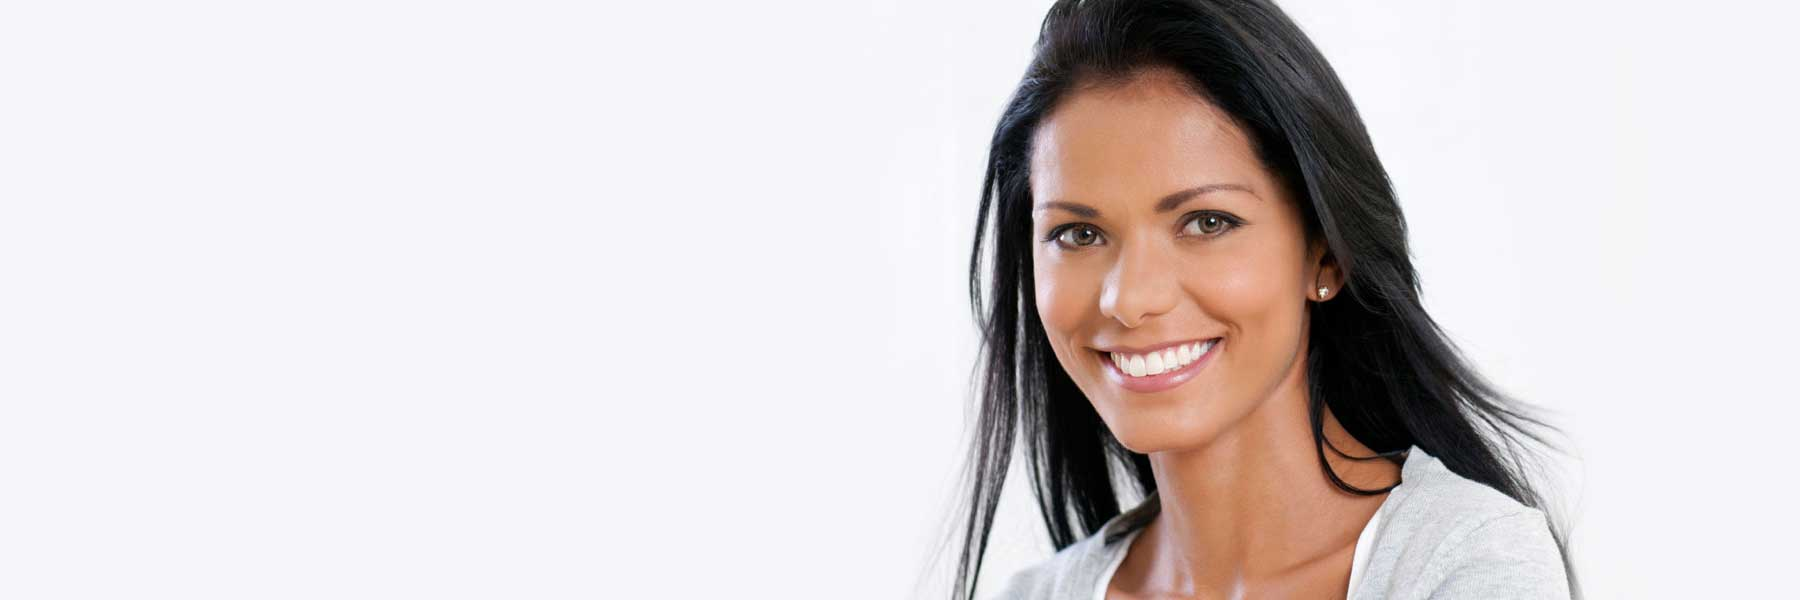 Teeth Whitening in Metairie, LA